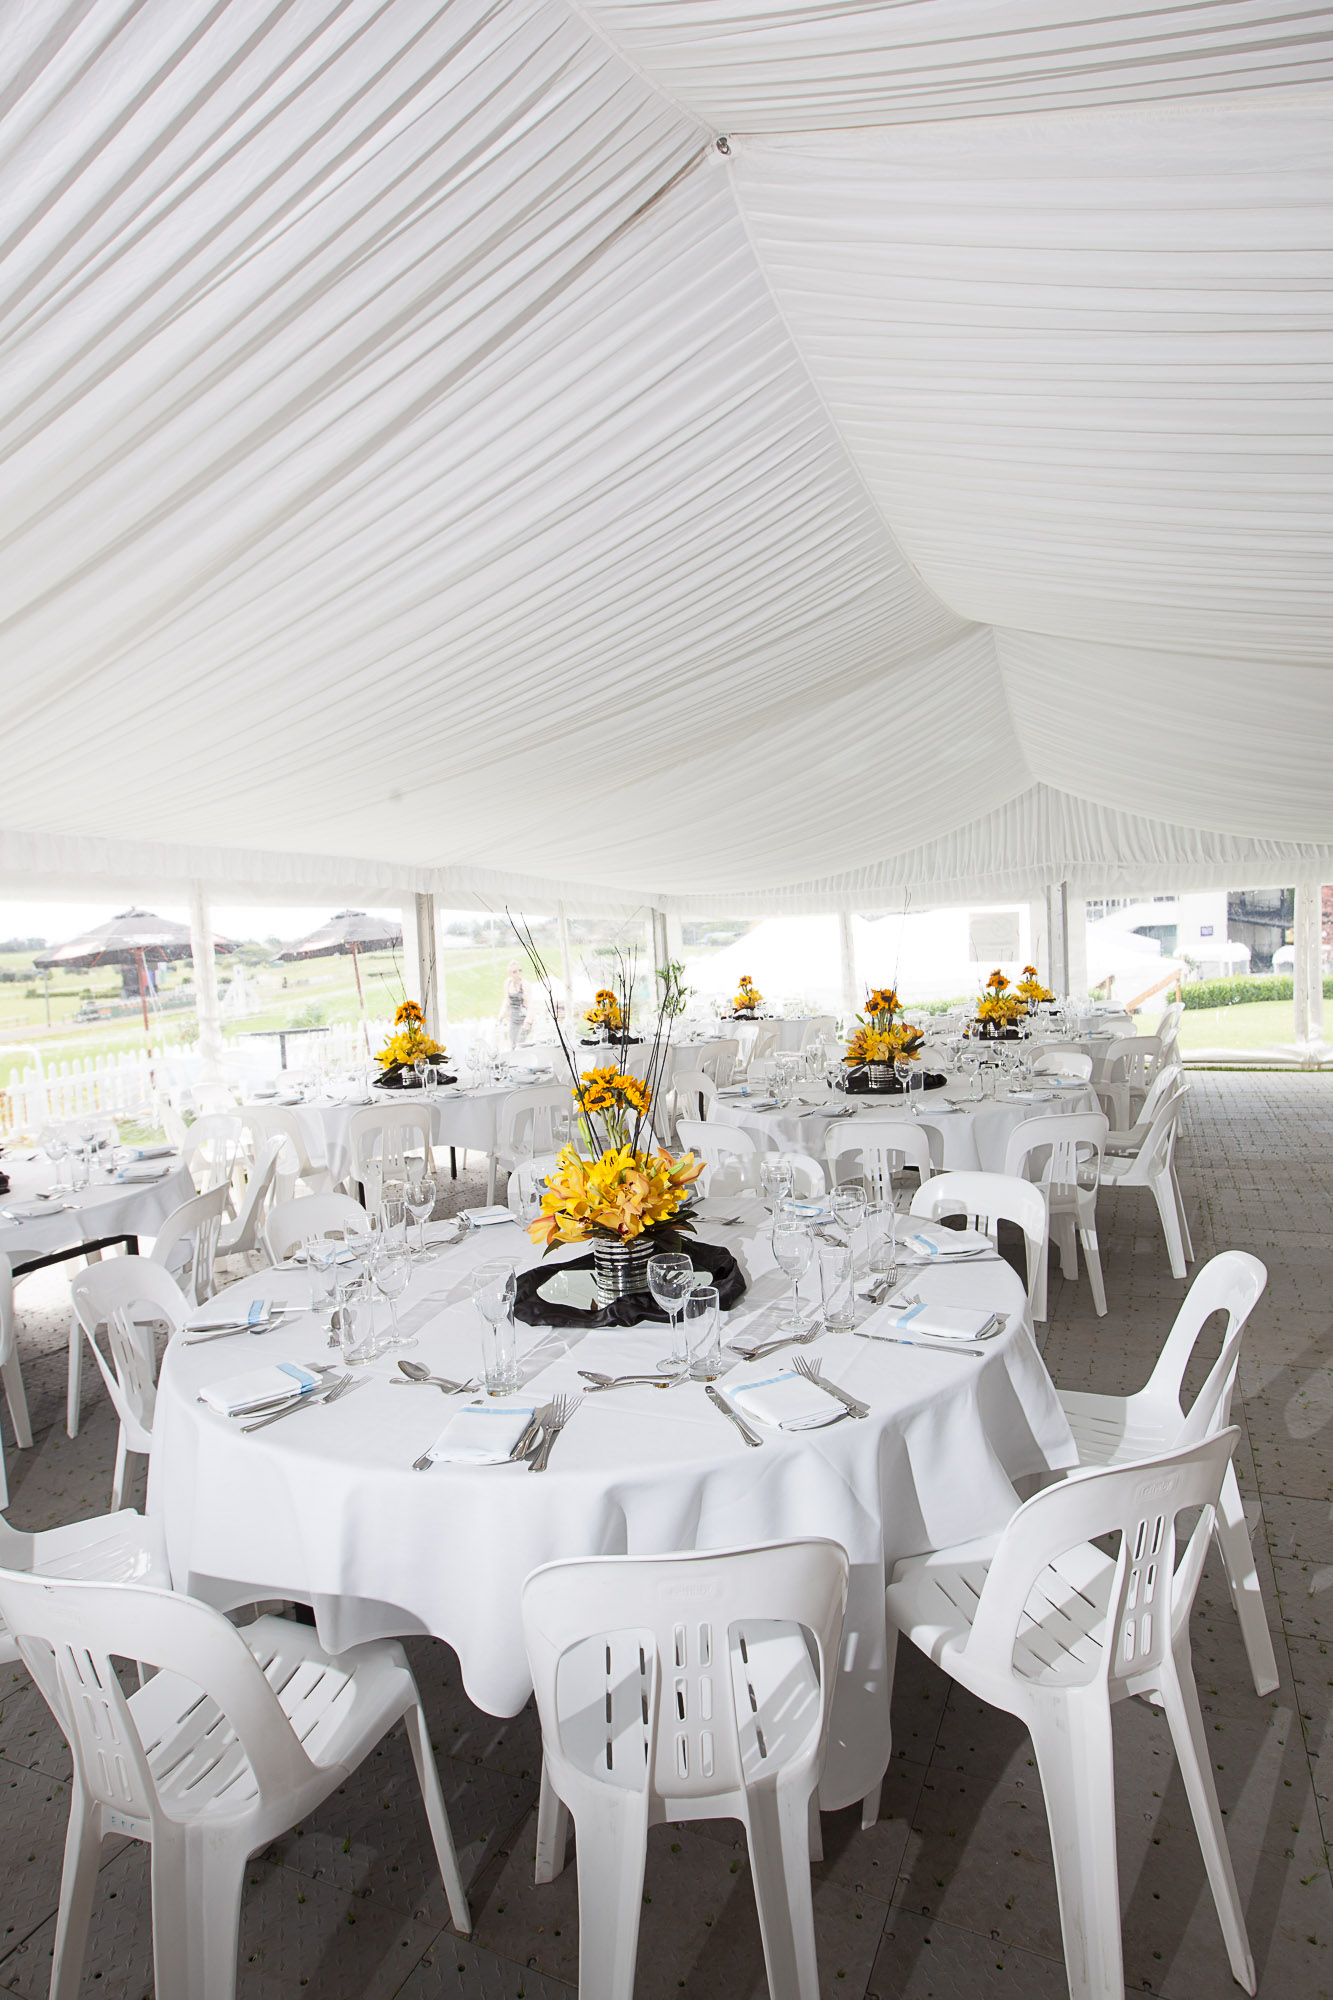 Our seasonal Champagne Lawn Marquee themed to suit an event